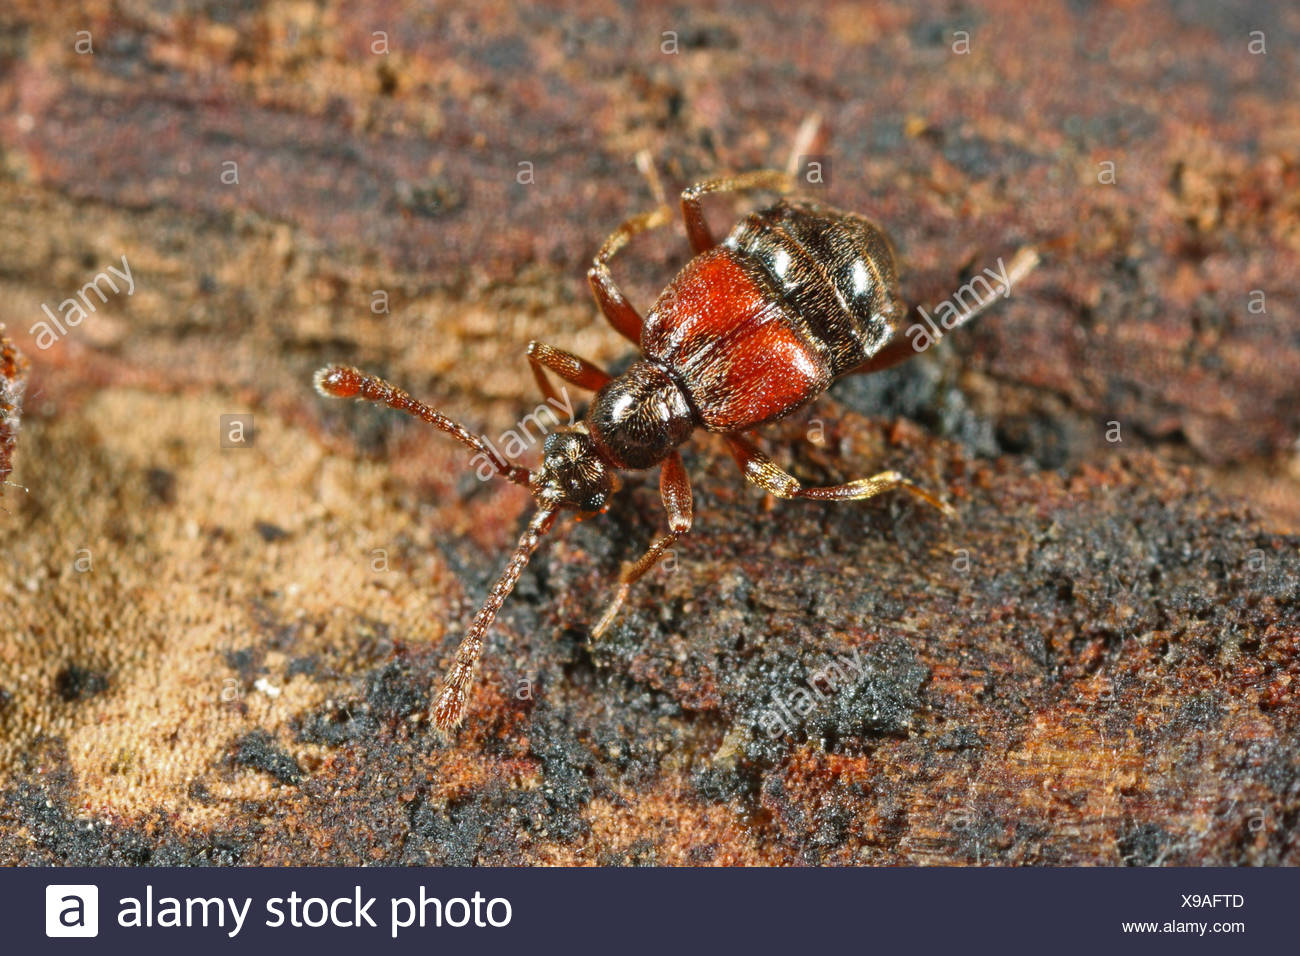 Short winged mold beetle (Tyrus mucronatus), on deadwood, Germany - Stock Image